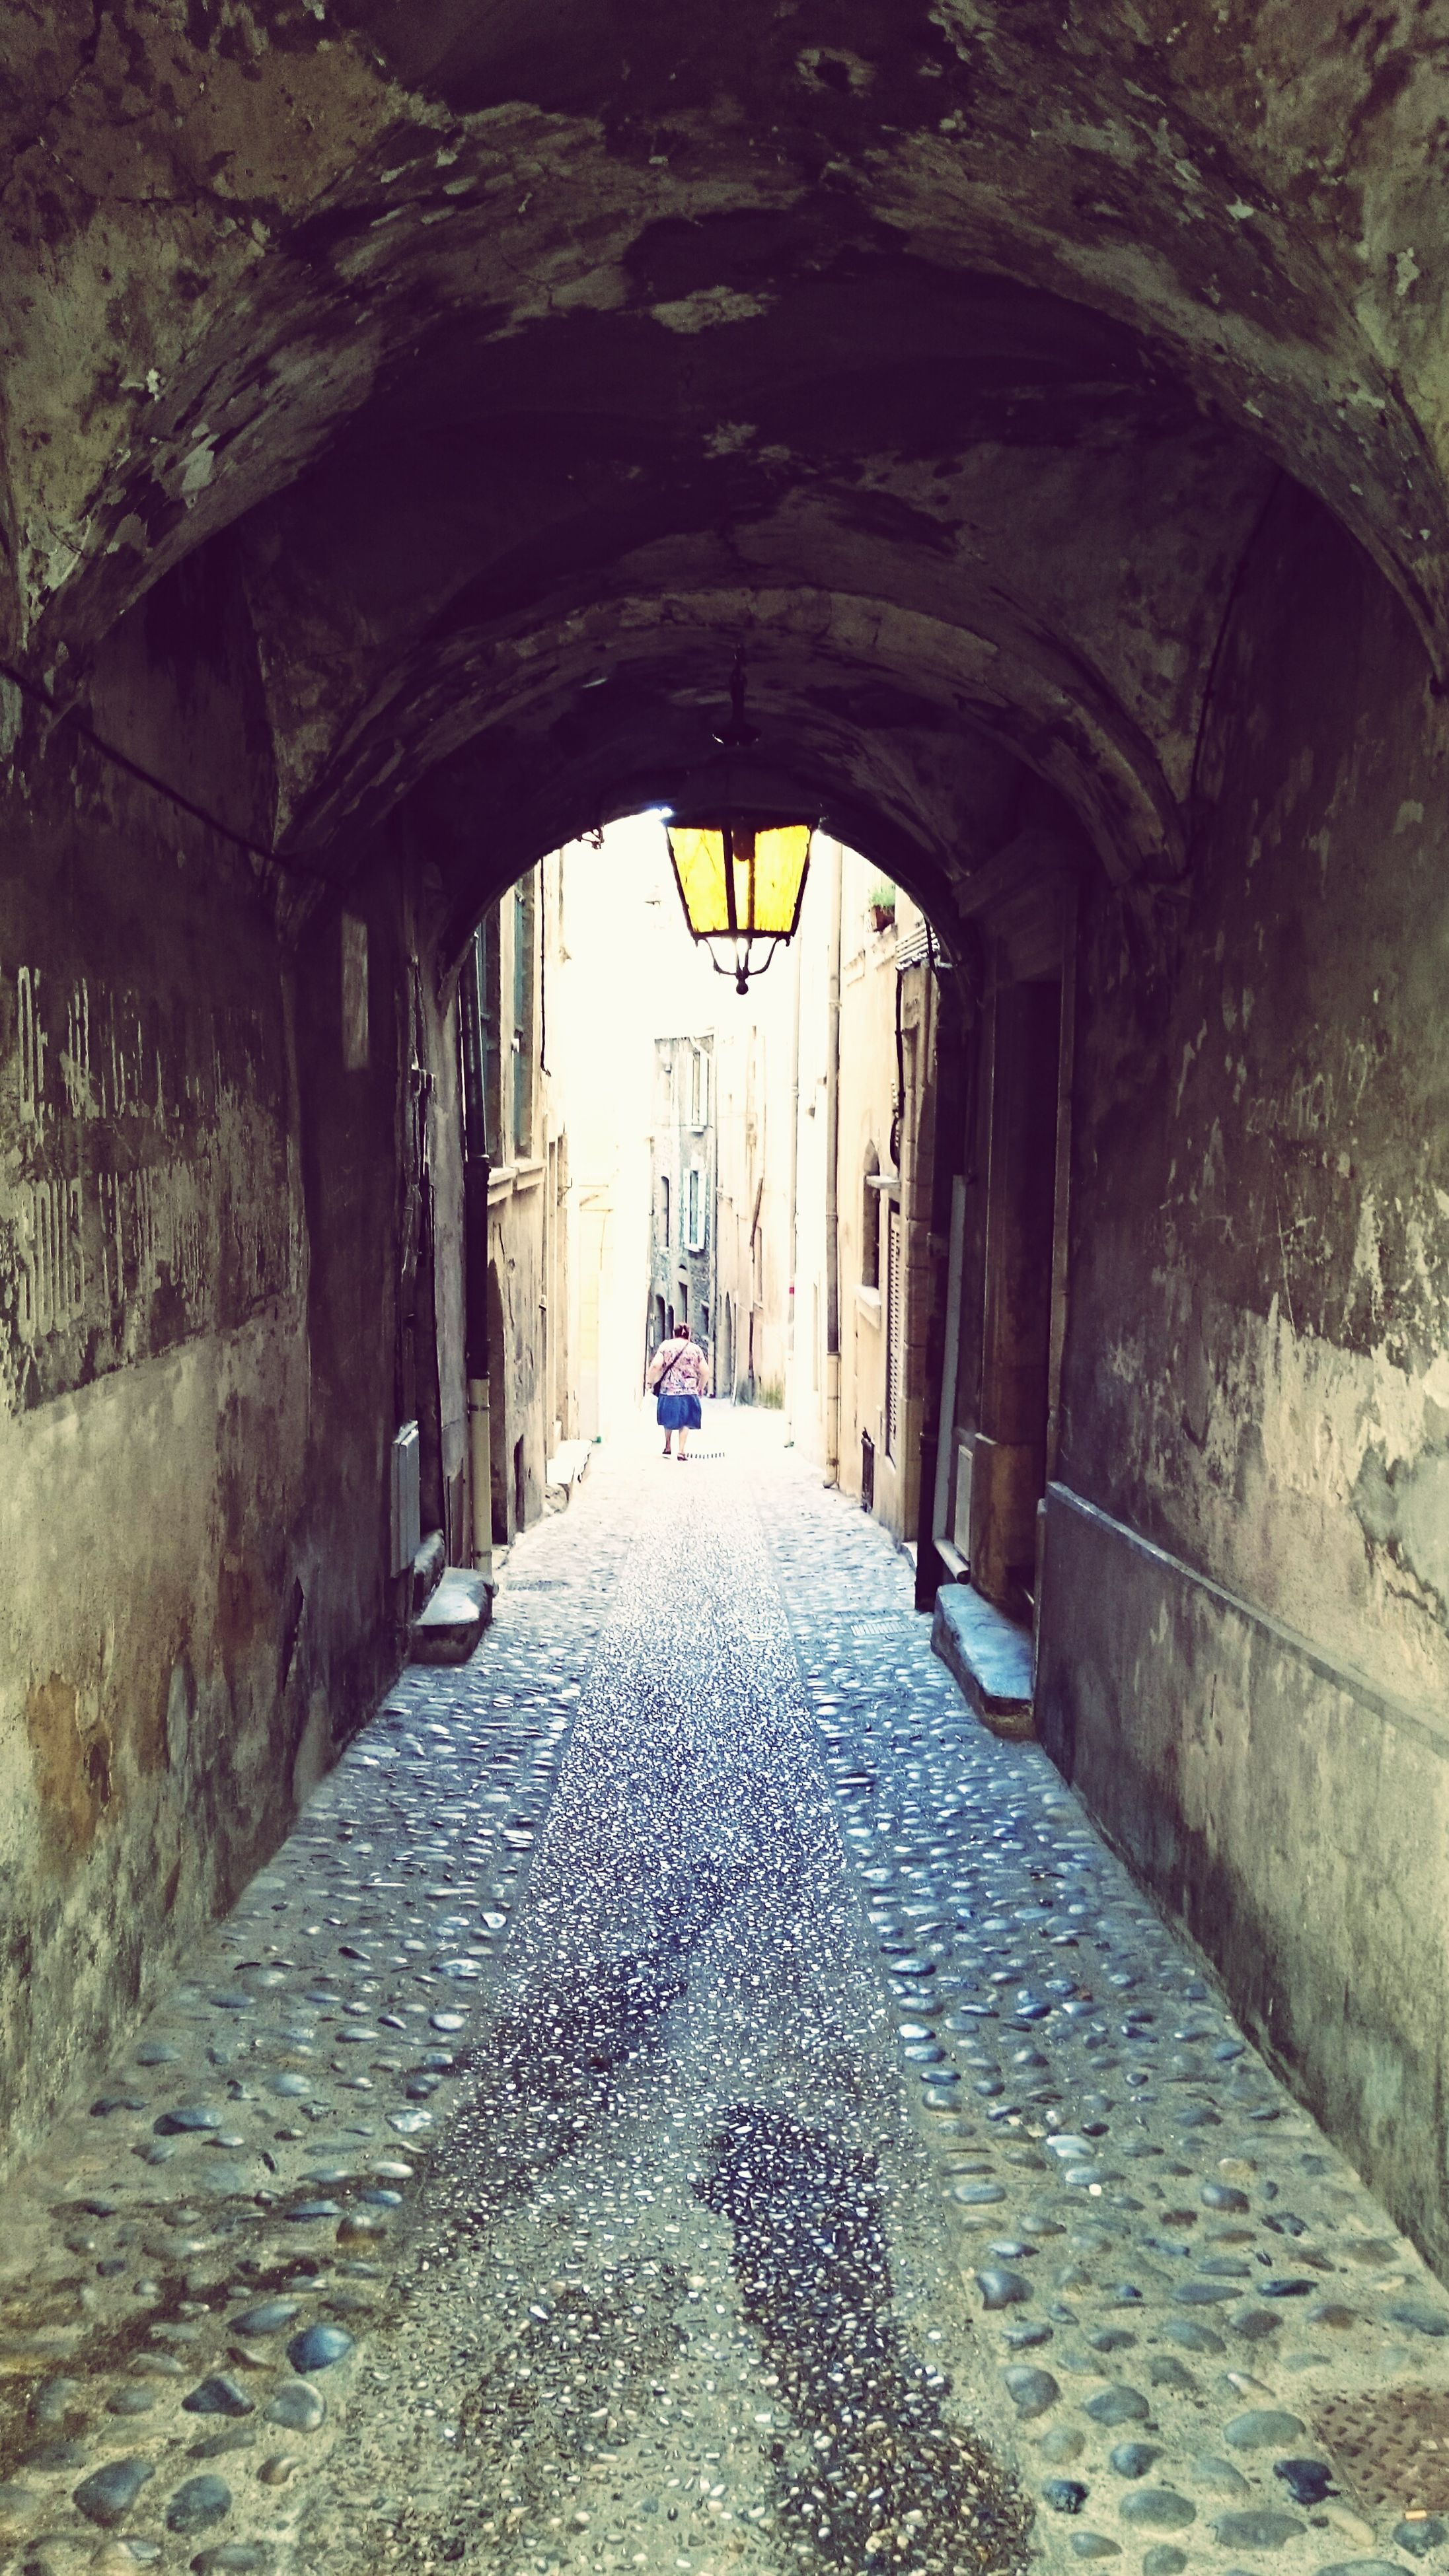 arch, architecture, built structure, the way forward, incidental people, building exterior, cobblestone, archway, day, diminishing perspective, the past, history, narrow, outdoors, alley, leading, old town, stone material, footpath, long, pedestrian walkway